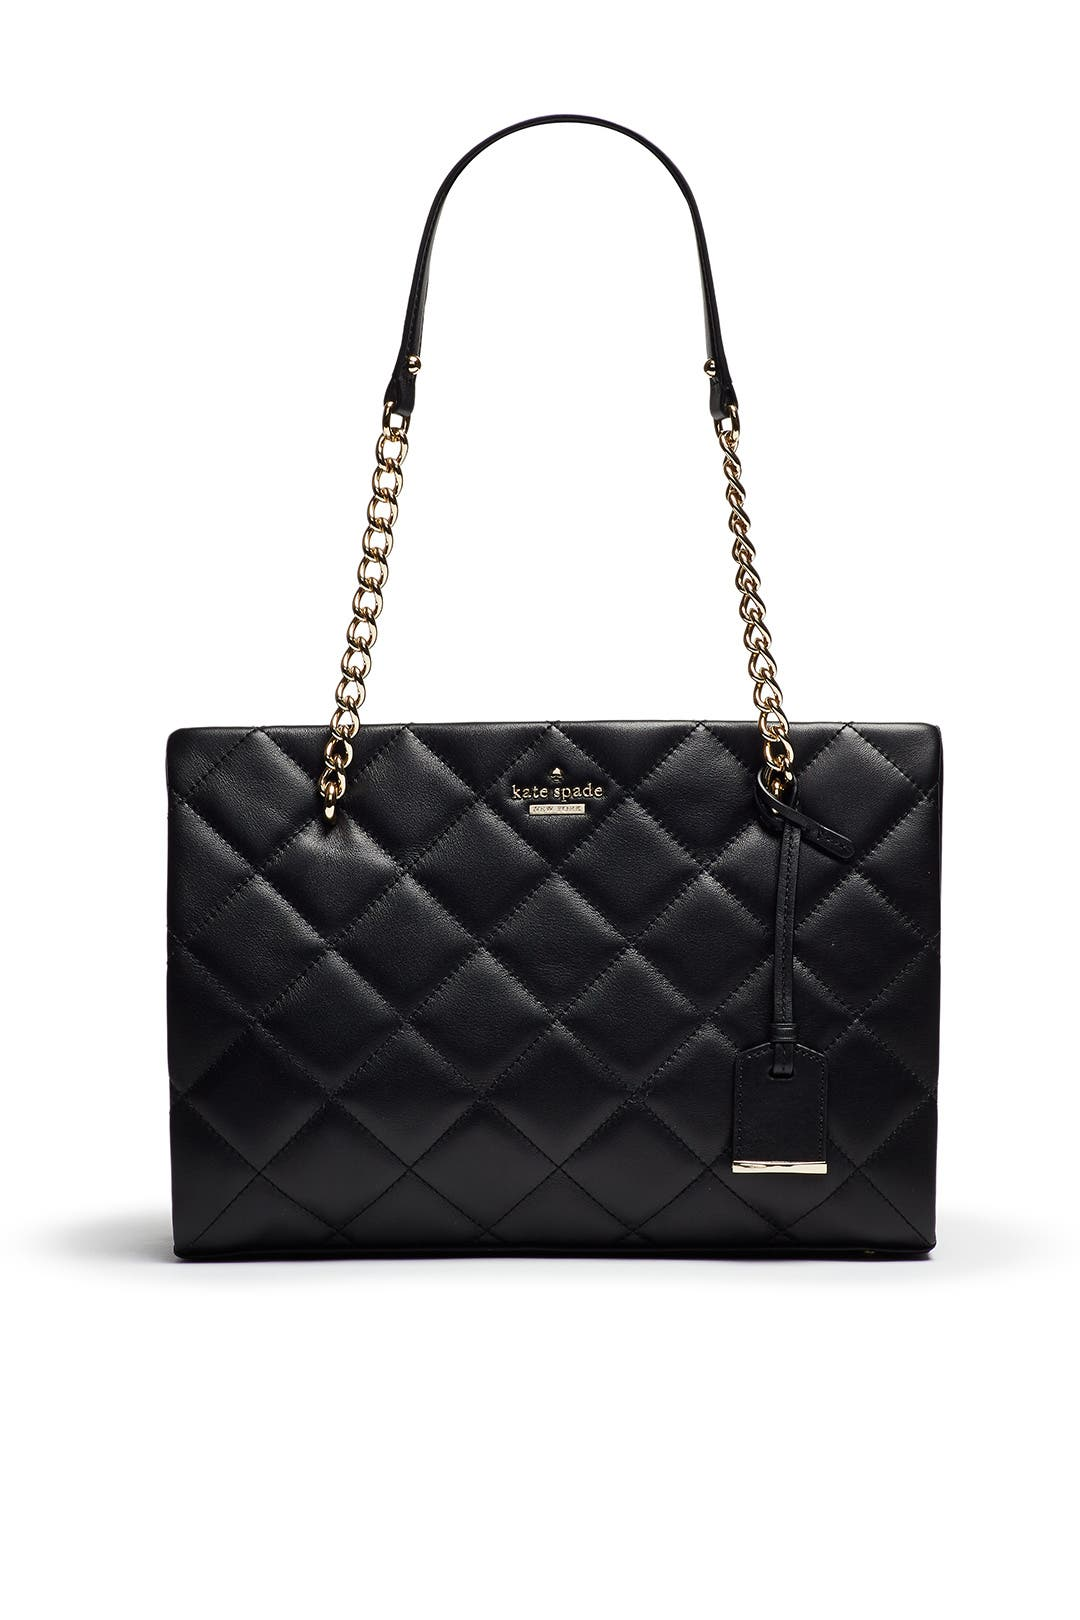 Emerson Place Phoebe Handbag By Kate Spade New York Accessories For